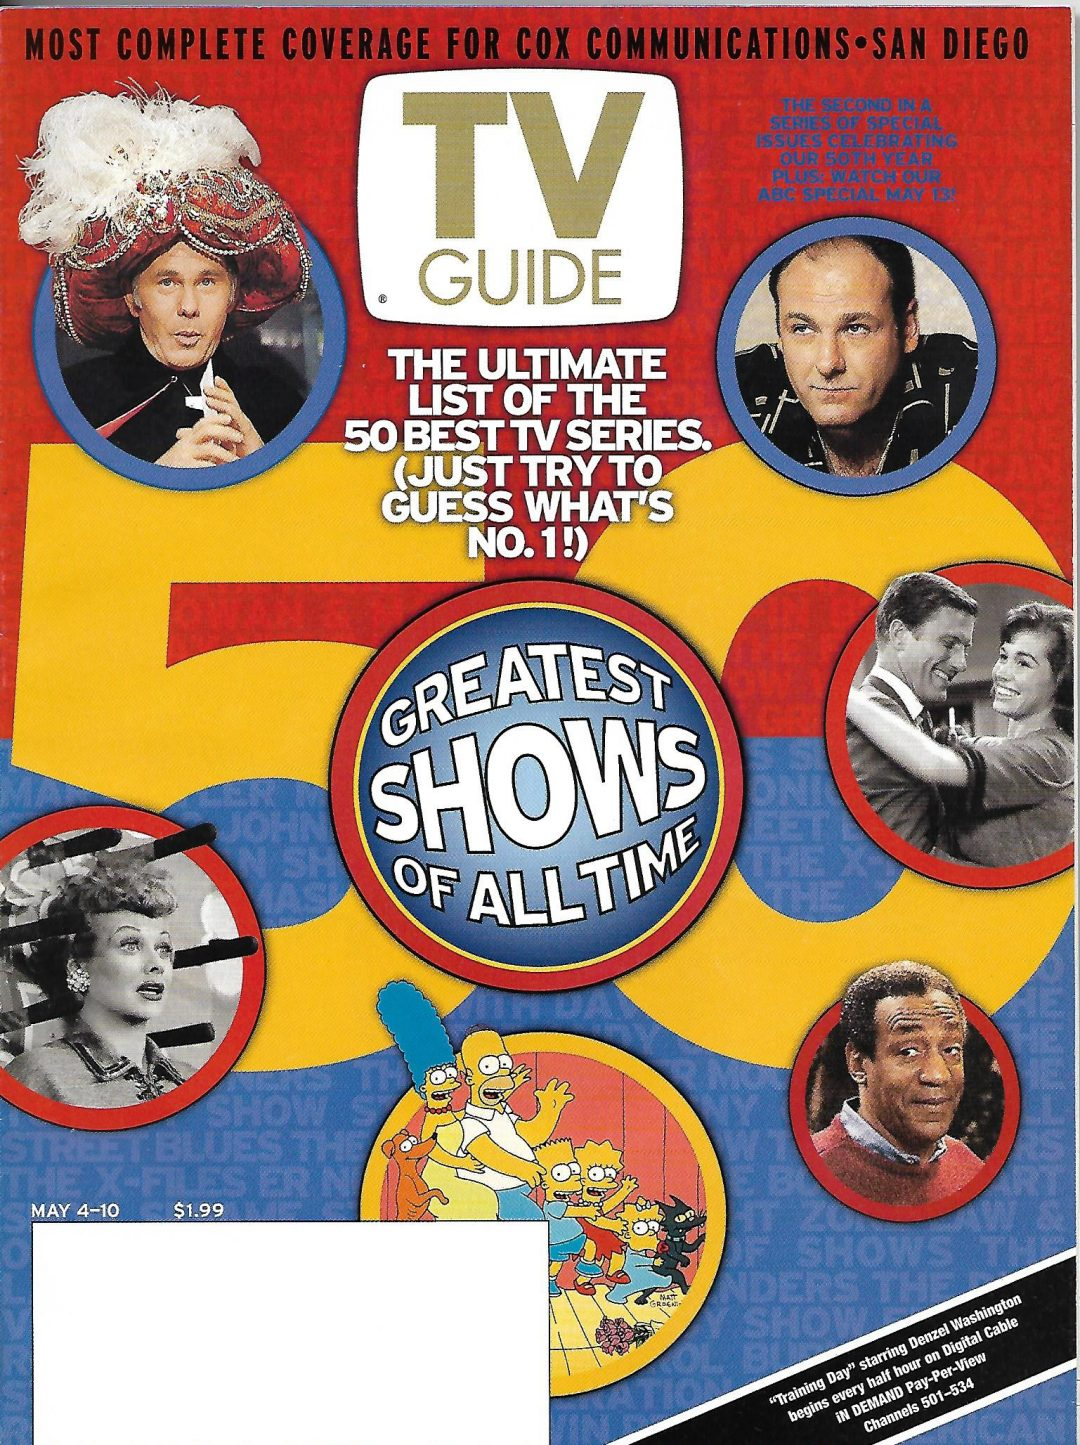 TV Guide: May 4-10, 2002